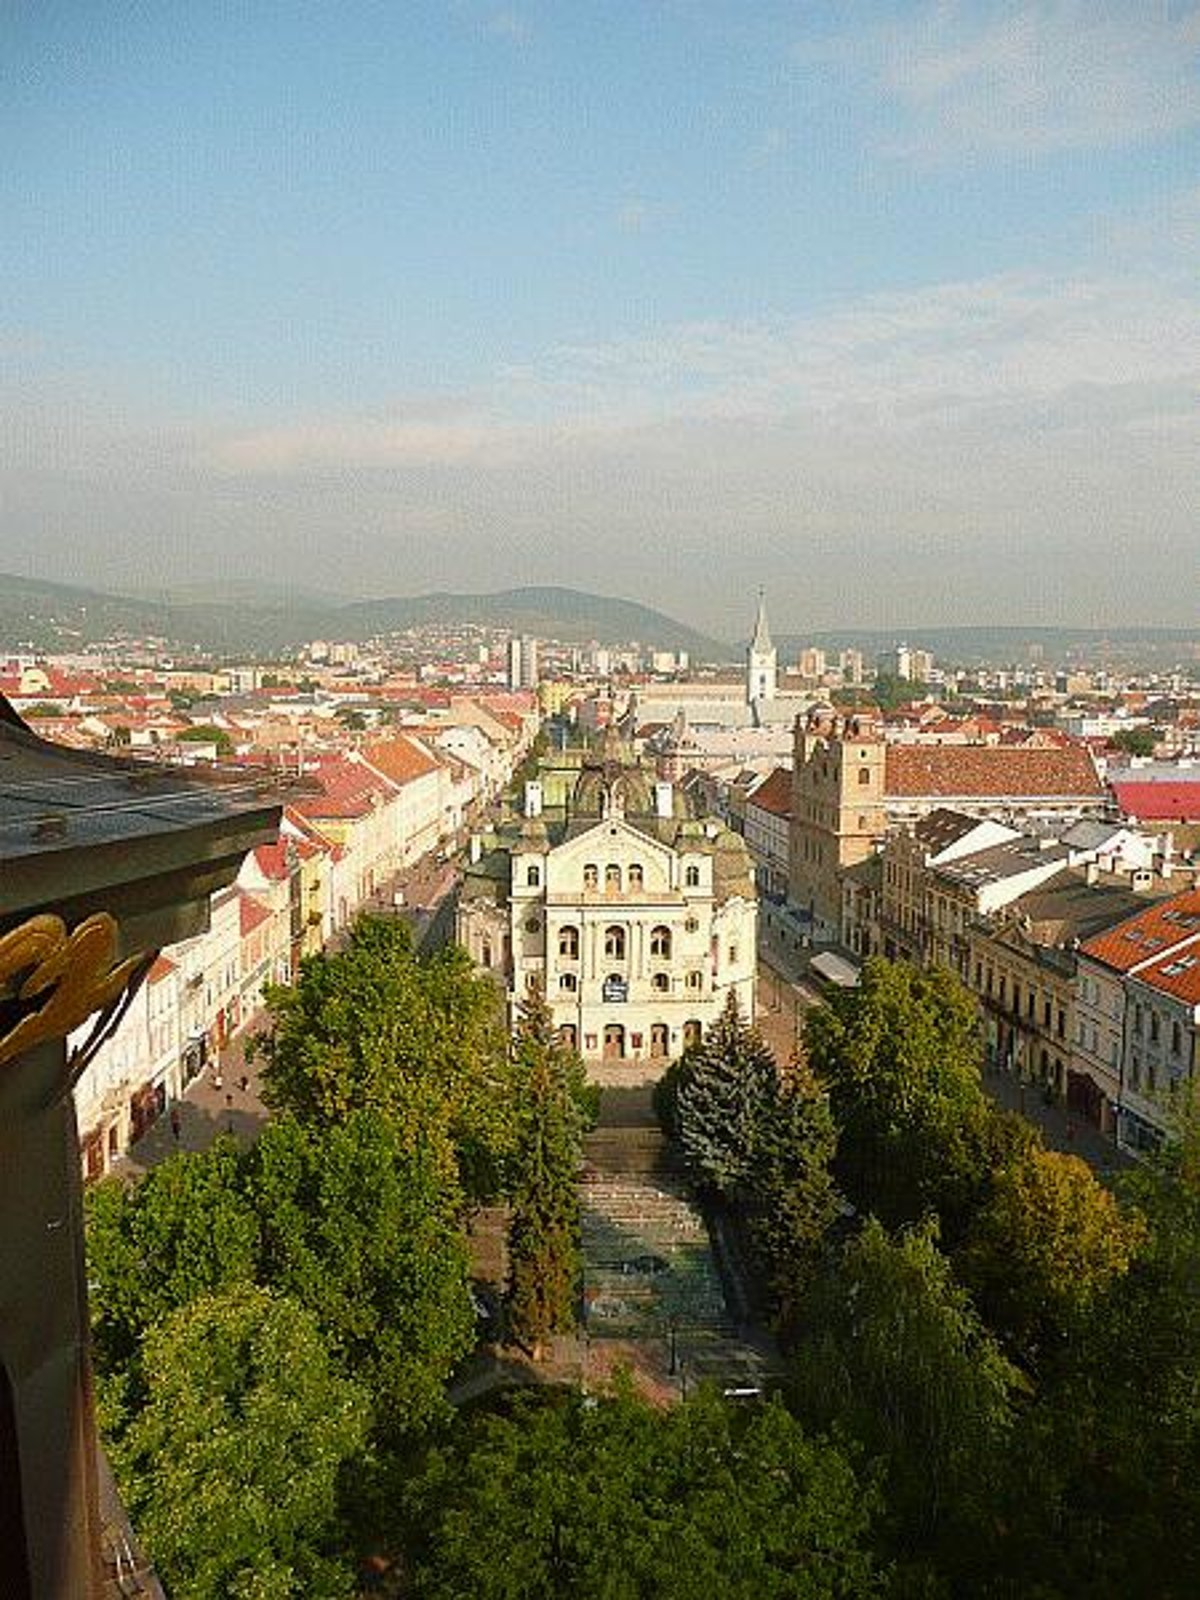 20a813a01 Košice: a city of the unexpected - spectator.sme.sk